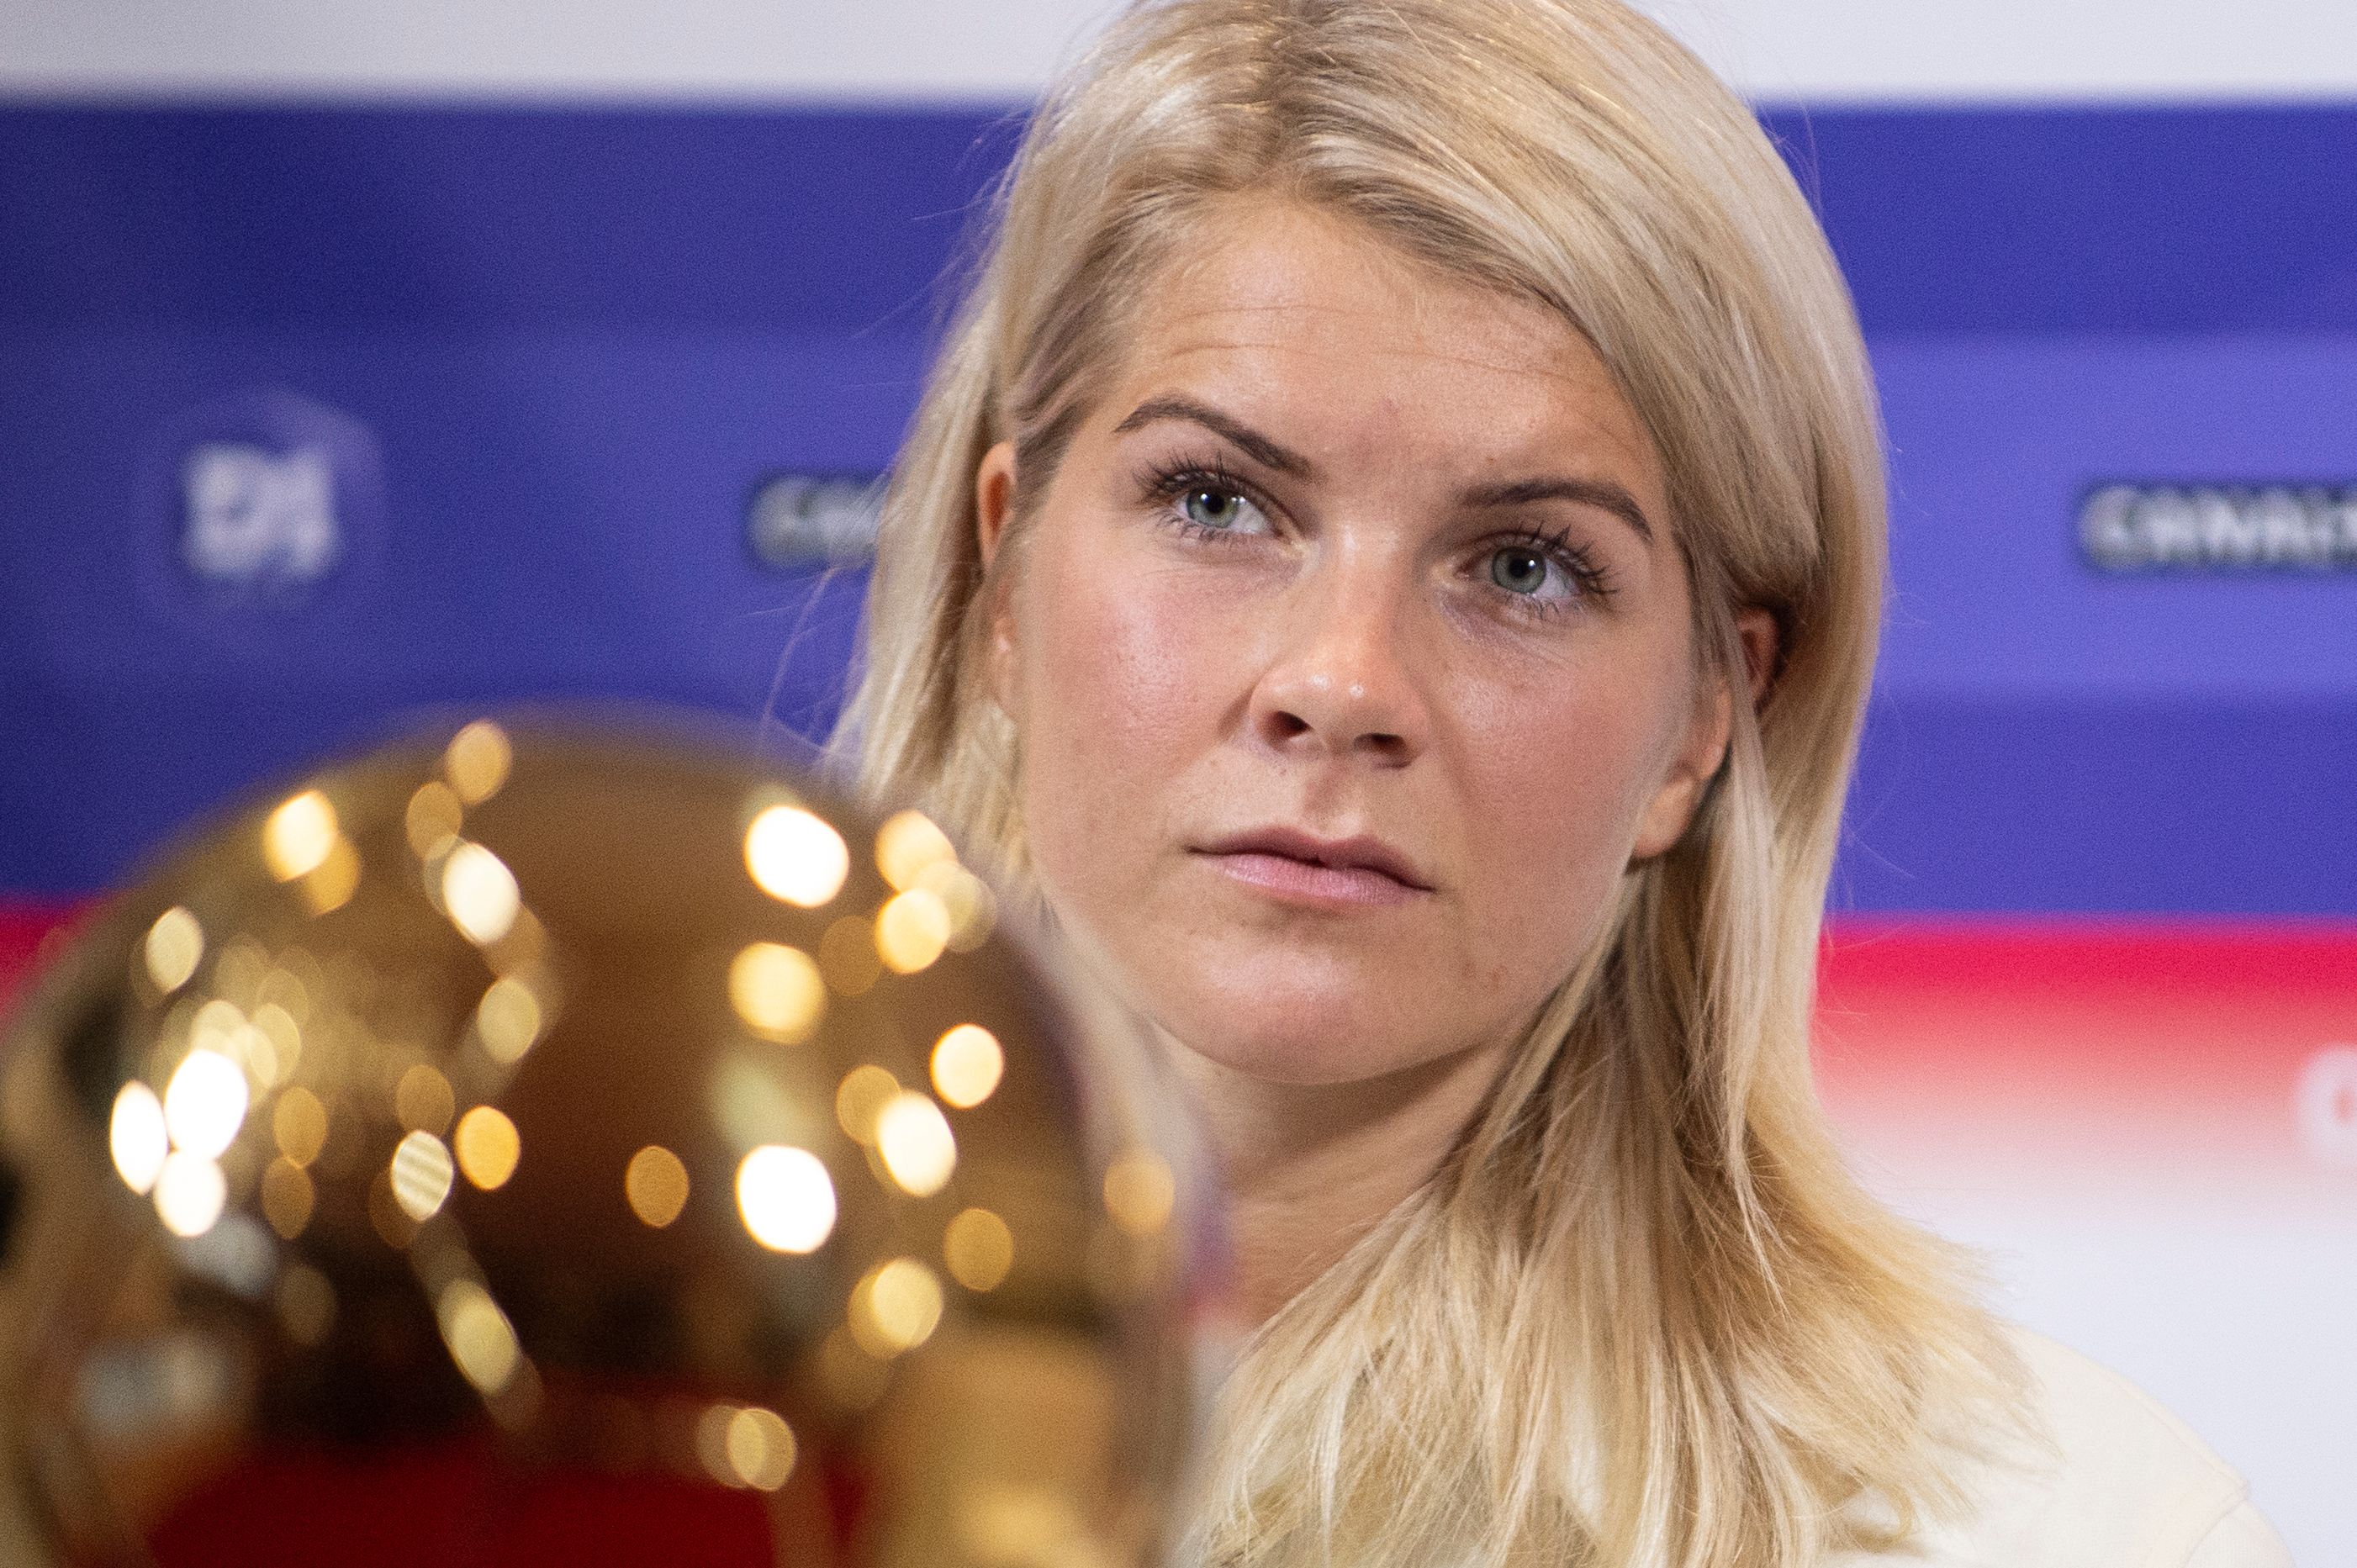 (FILES) In this file photo taken on December 4, 2018, Lyon's Norwegian forward Ada Hegerberg, winner of the 2018 Women's Ballon d'Or award for best player of the year, poses with the trophy during a press conference at the Groupama training center in Lyon, central eastern France. - She first took to the pitch as a pesky little girl who followed her big sister everywhere. Today she is the top female footballer in the world, crowned with the first women's Ballon d'Or. (Photo by ROMAIN LAFABREGUE / AFP)